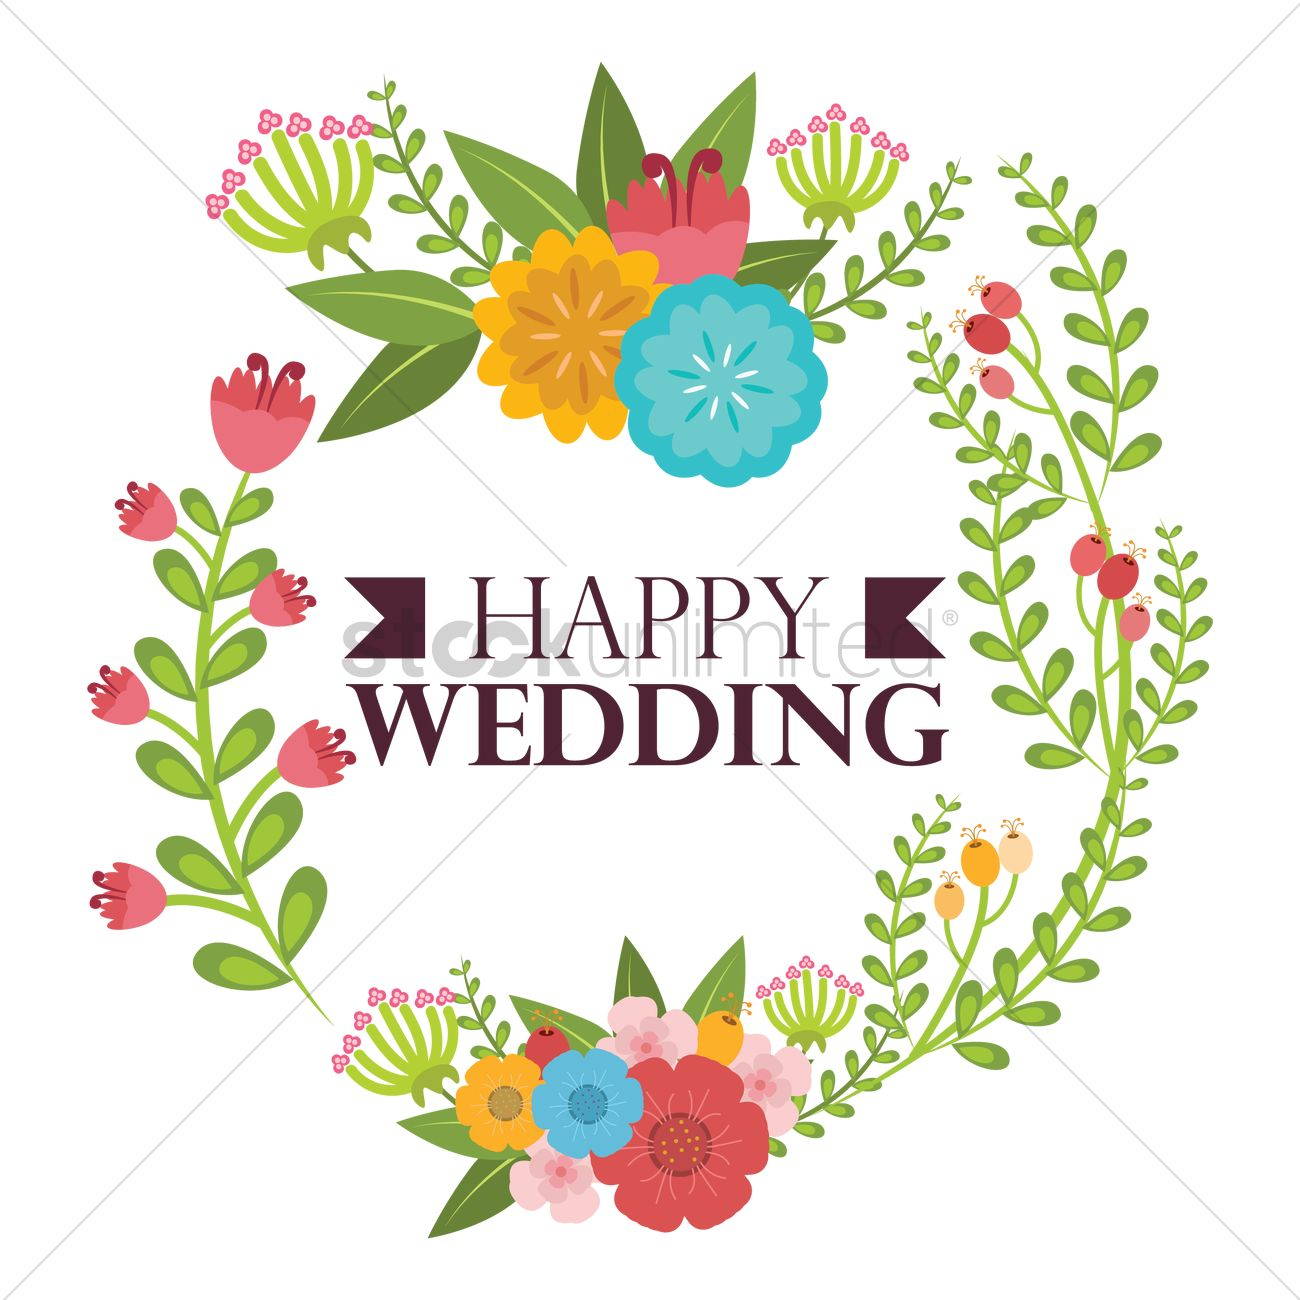 Happy wedding Vector Image - 1797282 | StockUnlimited